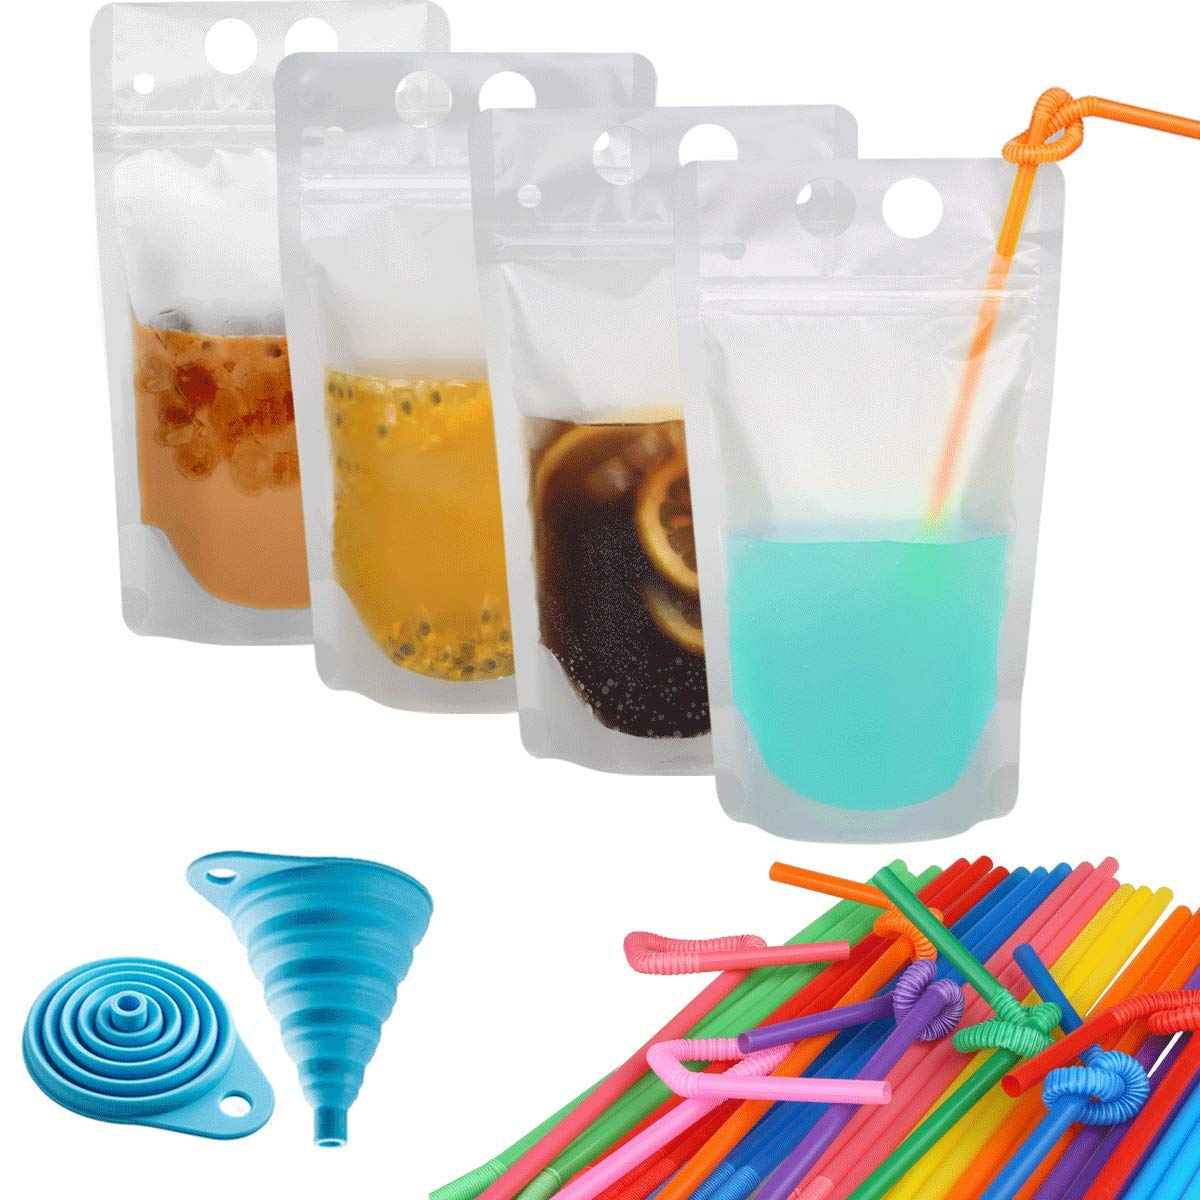 100 Pcs Zipper Plastic Pouches Drink Bags,Heavy Duty Hand-Held Translucent frosted Reclosable Stand-up Bag 2.4\